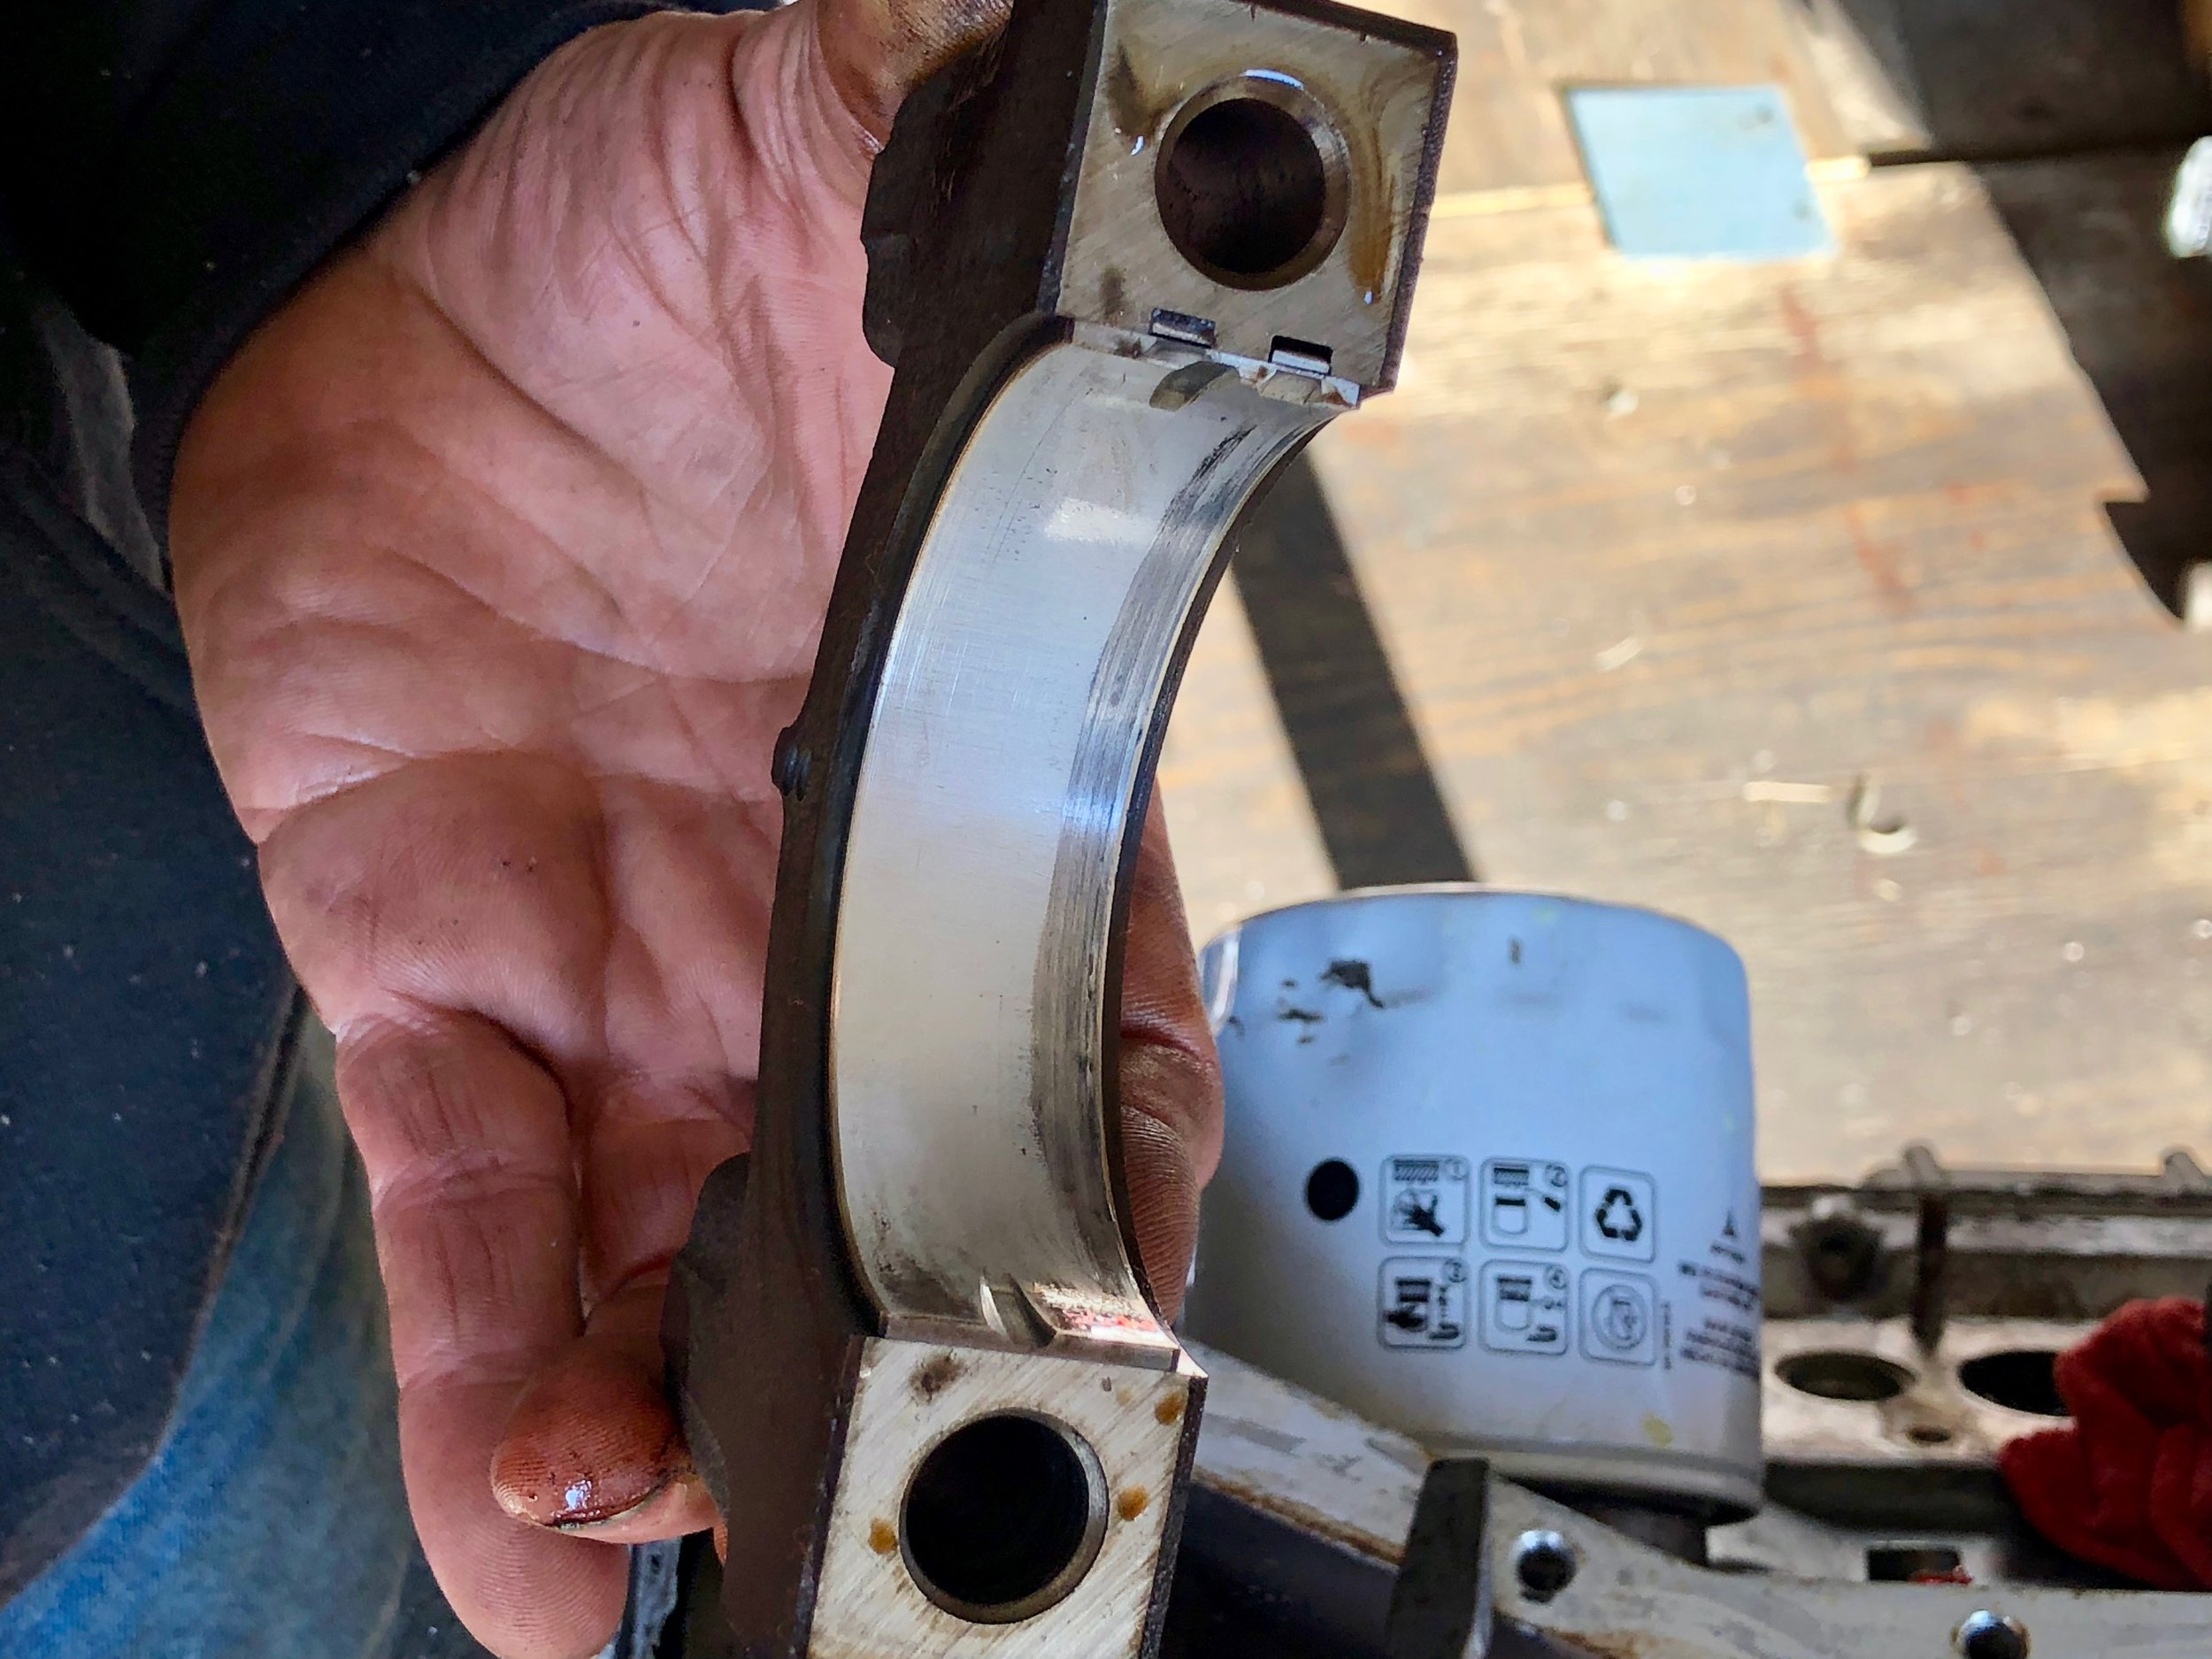 A look at another one of the bearings, showing scratches from running without lubrication.